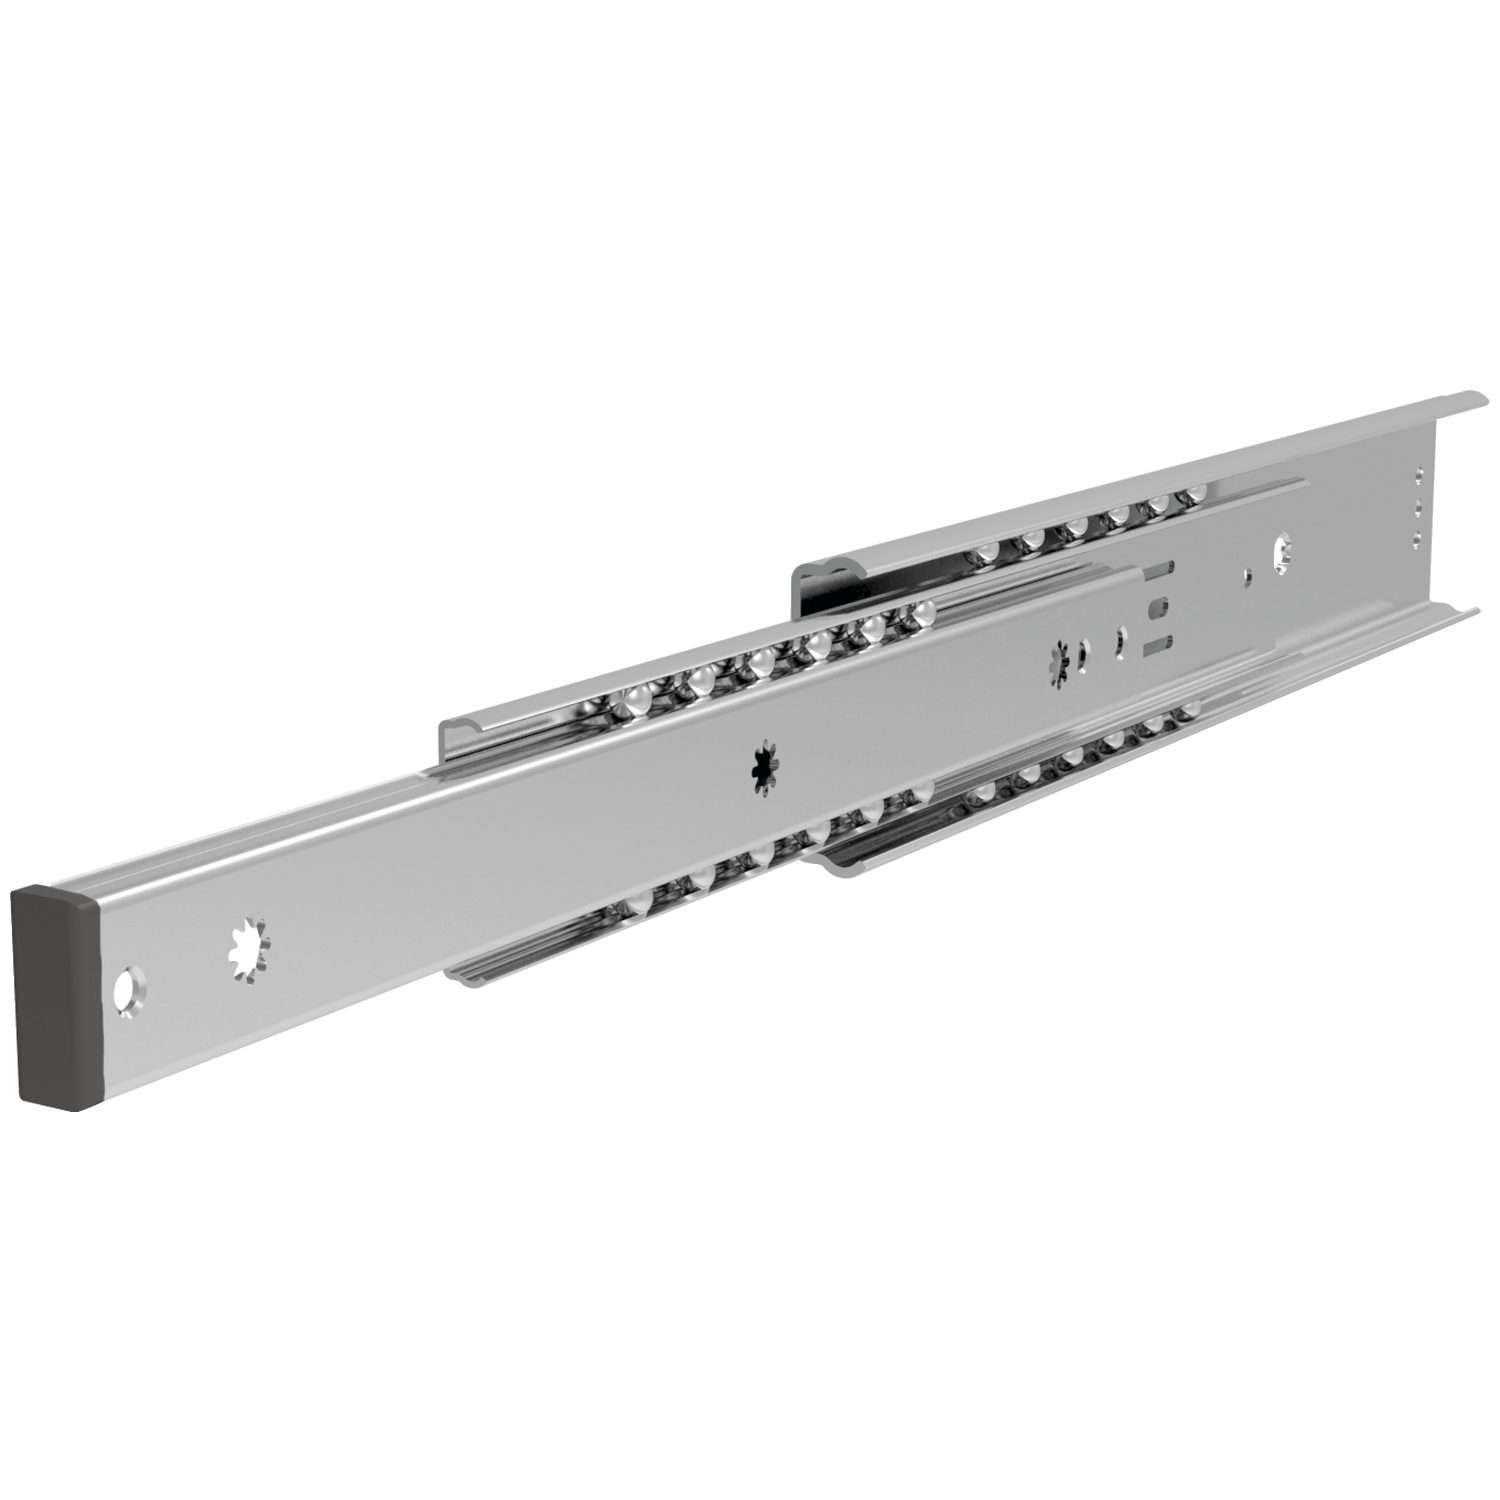 L2012 - Fully Telescopic Drawer Slide